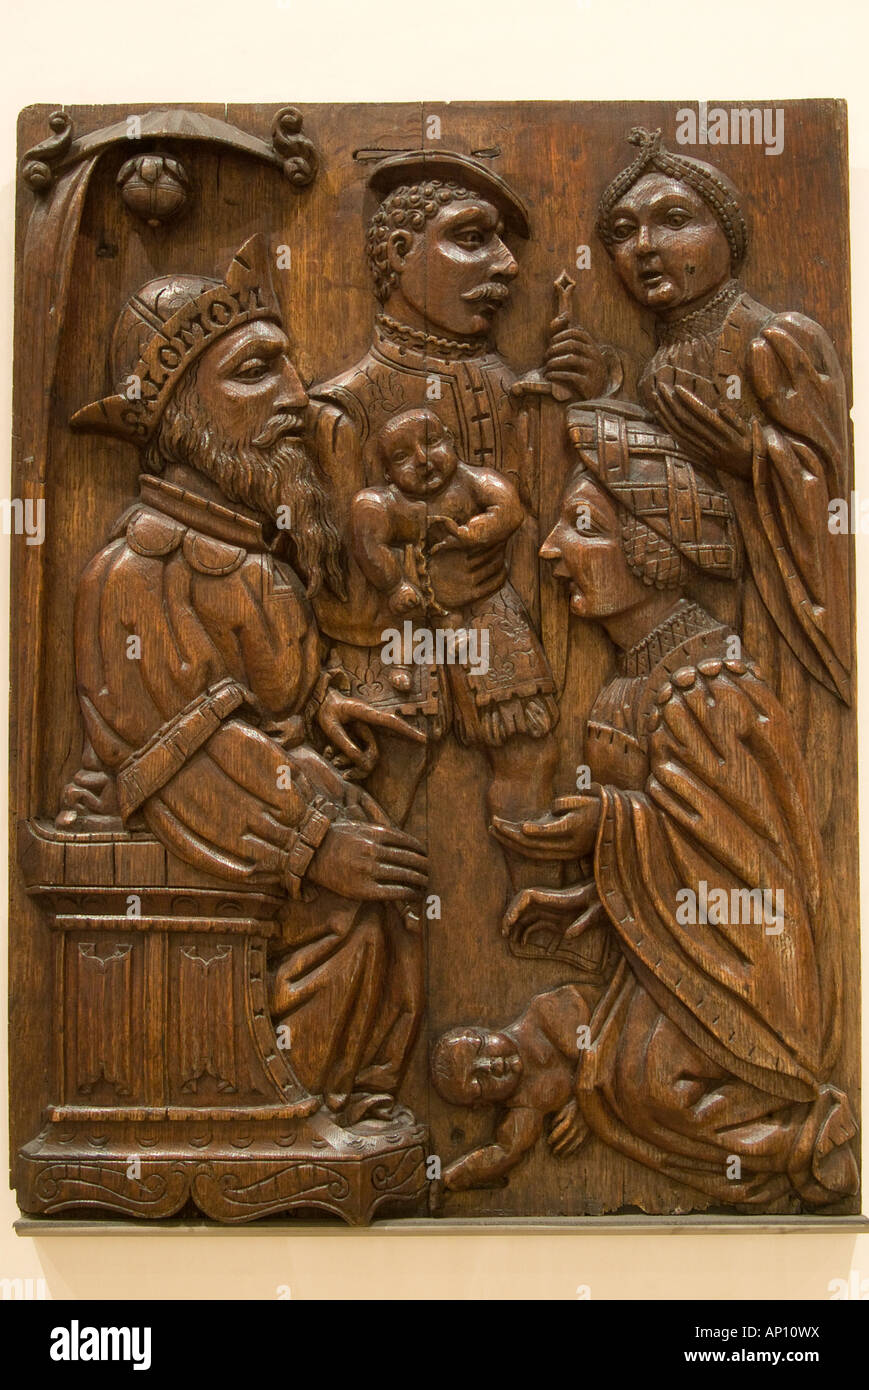 house overgate dundee mid 16th century biblical image copied from medieval woodcut carved in renaissance style high - Stock Image